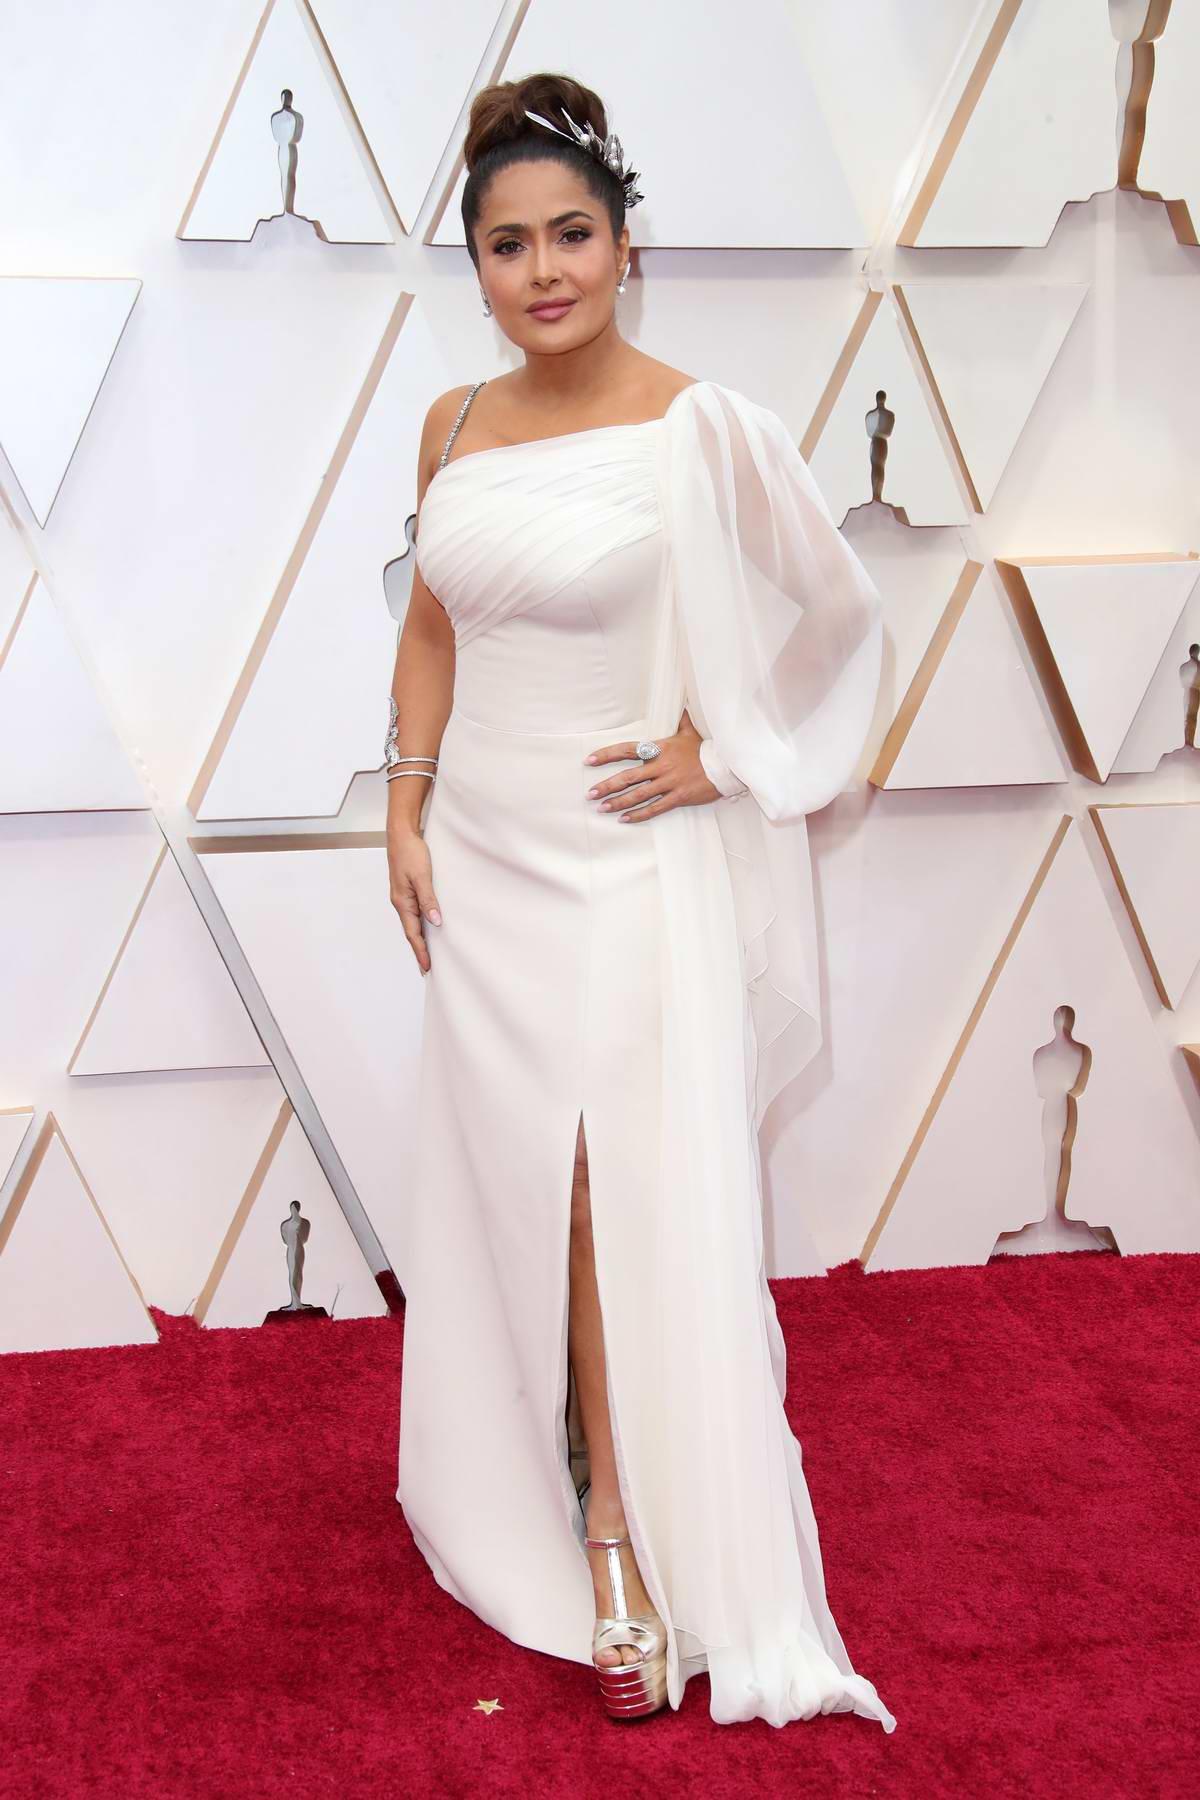 Salma Hayek attends the 92nd Annual Academy Awards at Dolby Theatre in Los Angeles